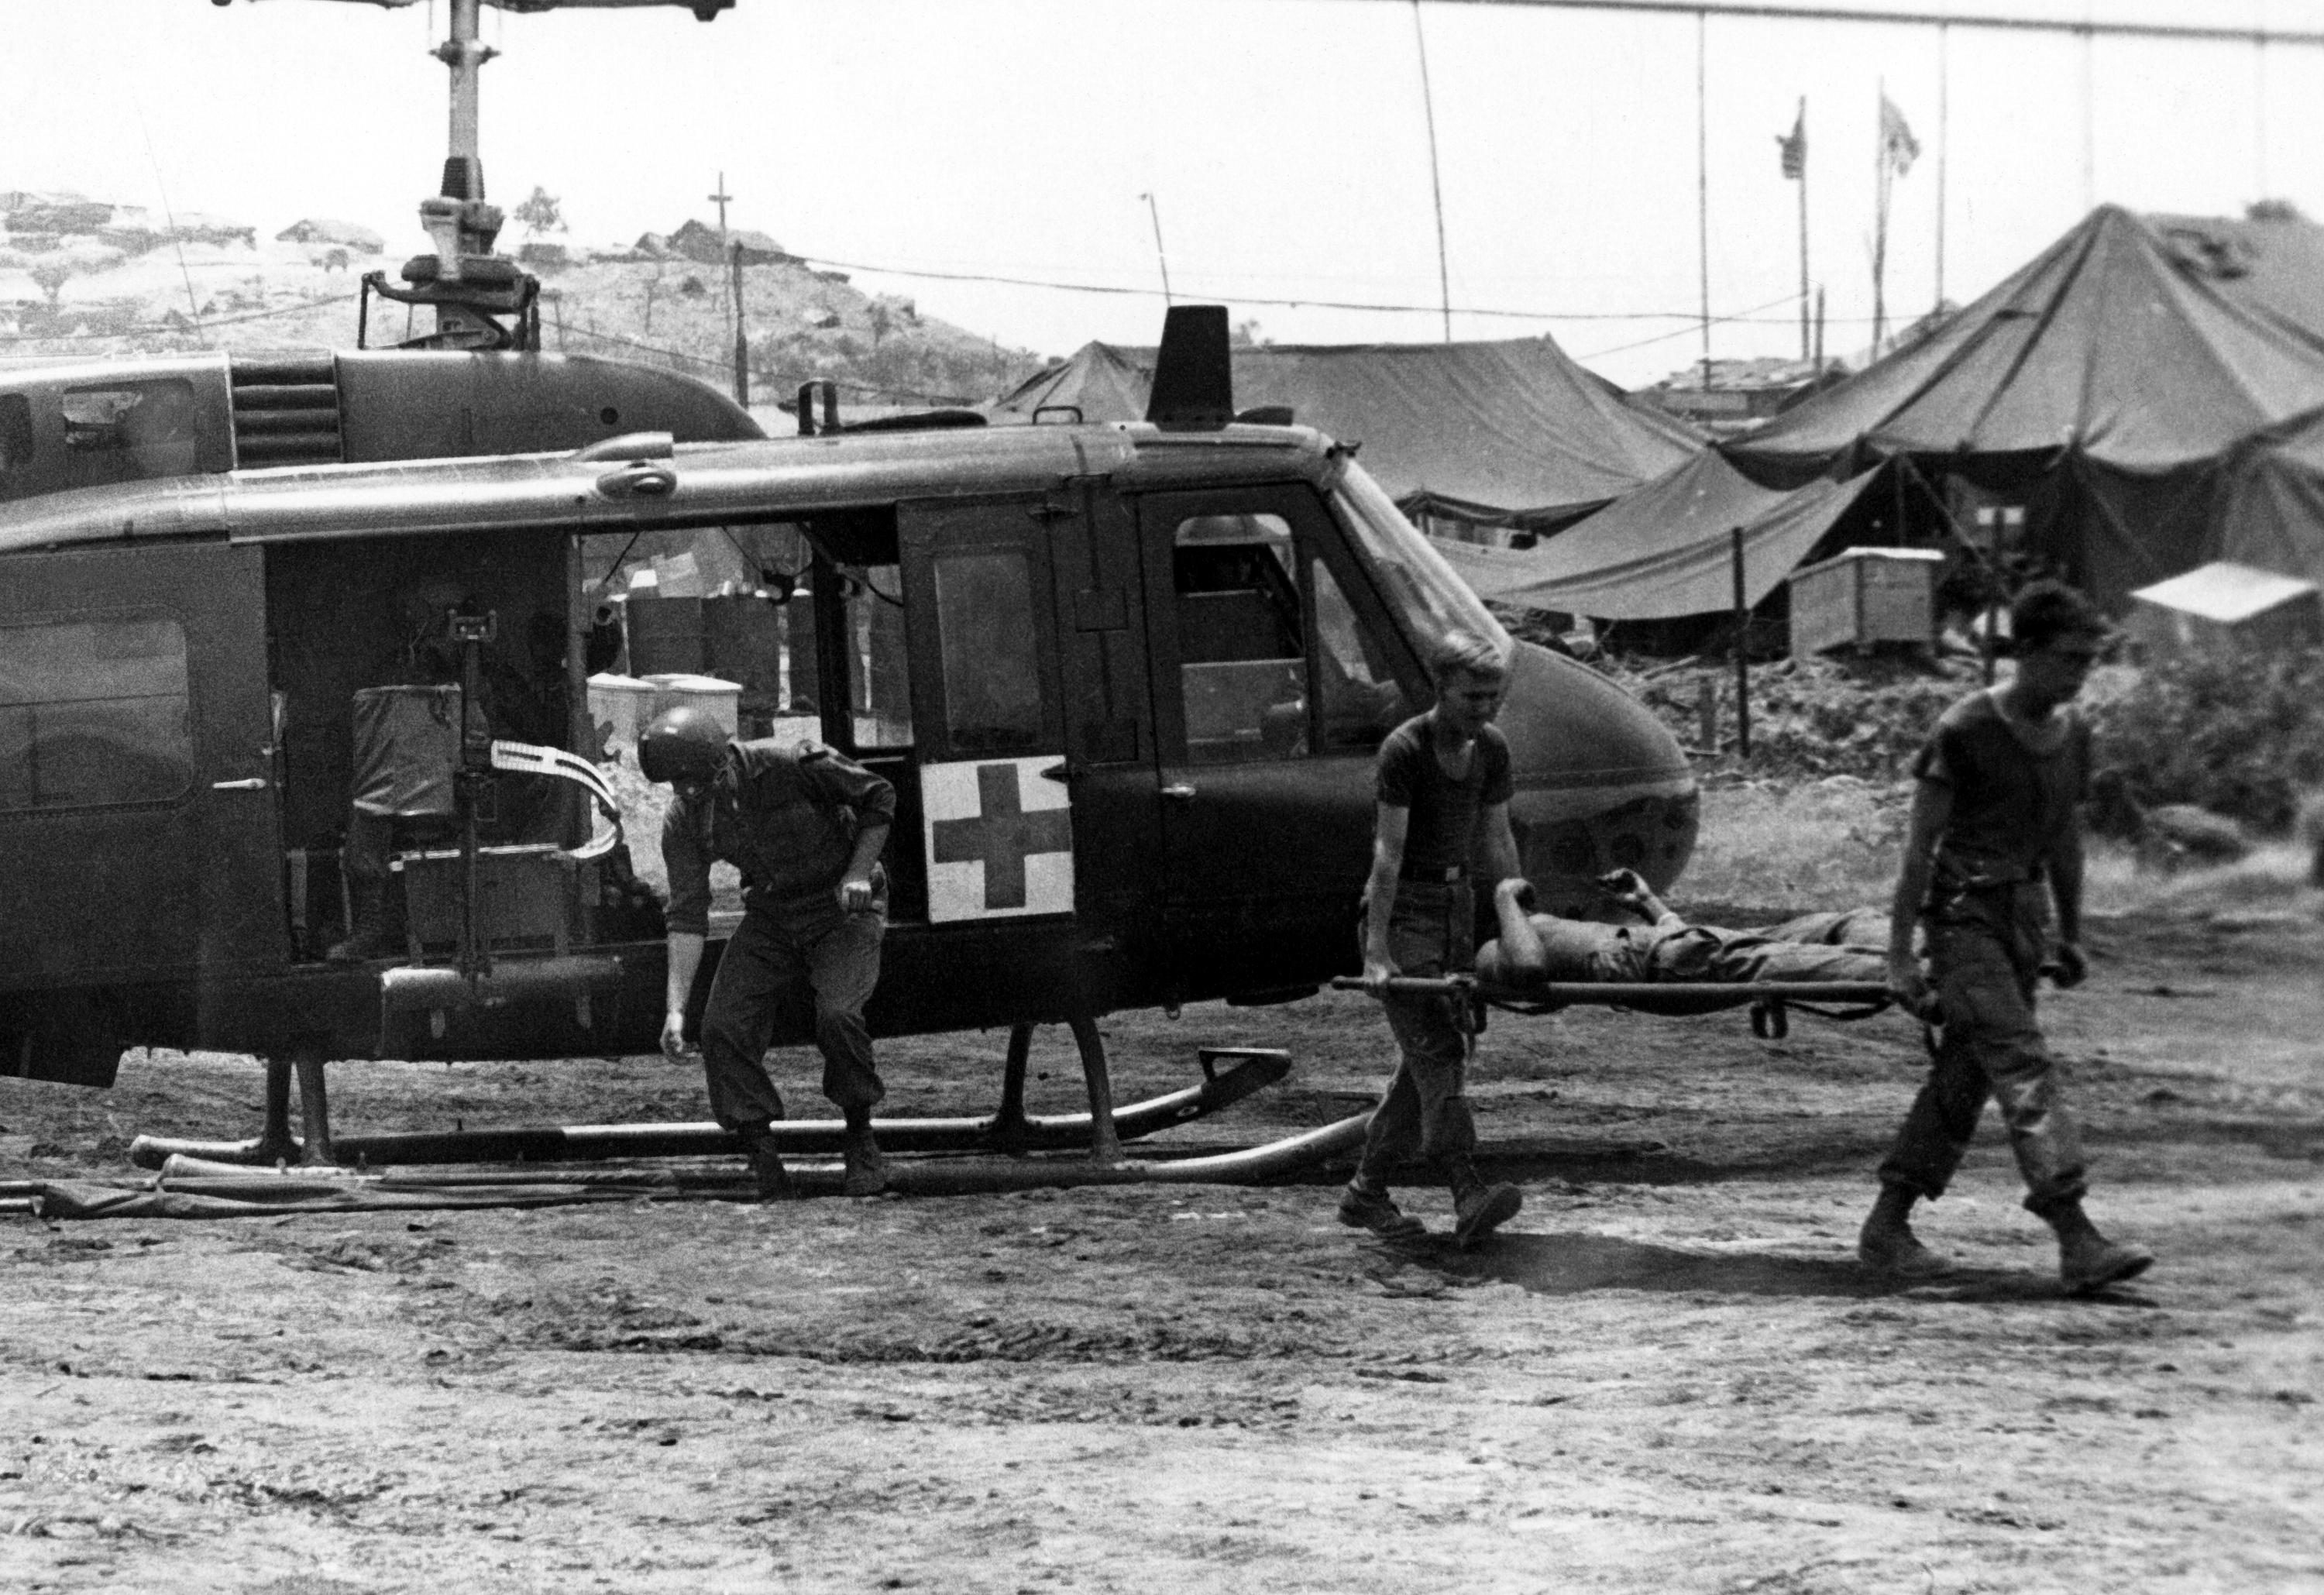 hueys helicopter with Dustoff on Ah 1w Super Cobra likewise Vietnam Air Force Helicopter Crashes In Hcmc Crew Dead 38125 in addition H AH 1 Cobra Helicopters as well 85 5536 besides Showthread.